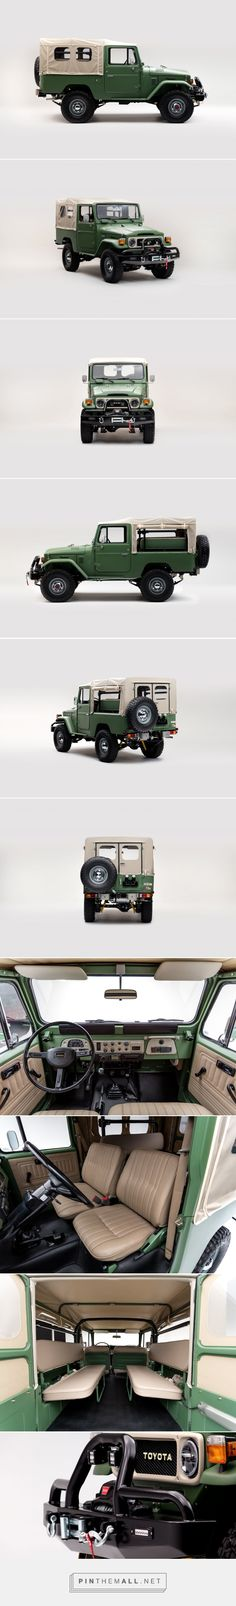 Matte Green 1984 Toyota Land Cruiser FJ43